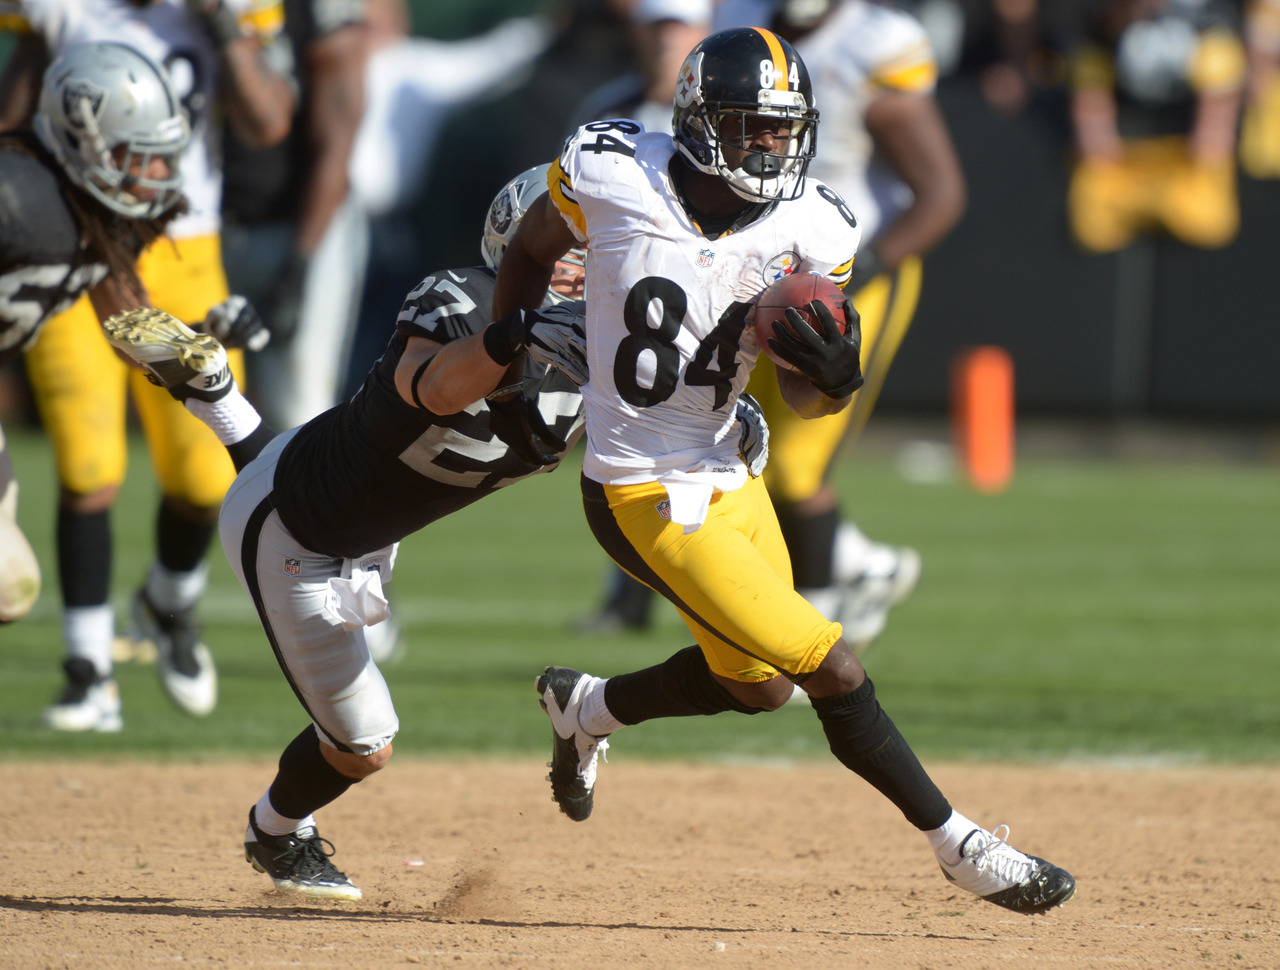 Game Antonio Brown Running With Ball Wallpapers 1280x970